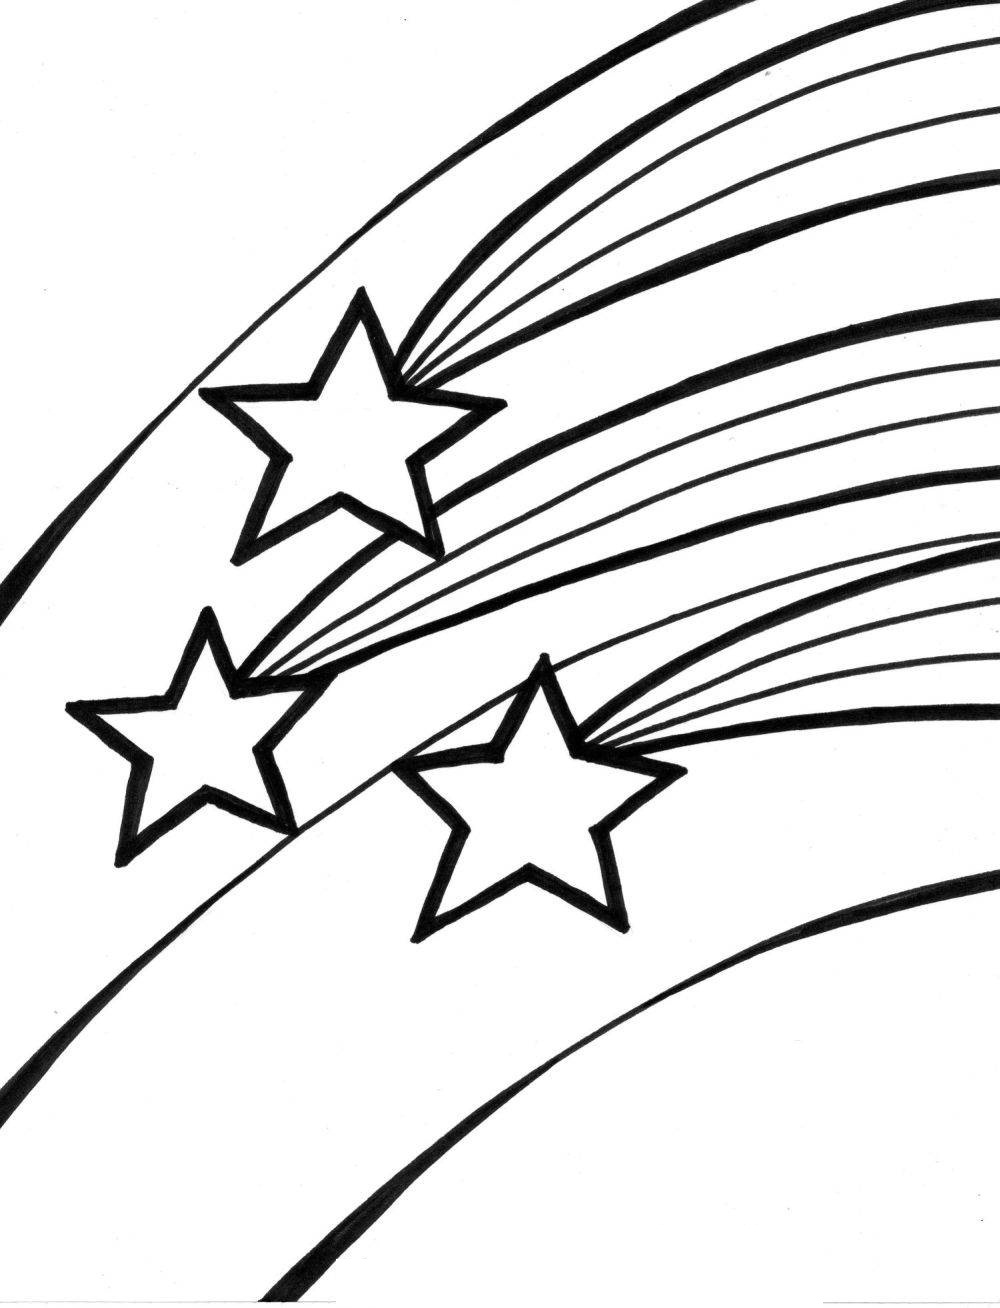 Shooting Star Outline | Free download best Shooting Star Outline ... for Shooting Star Clip Art Black And White  70ref